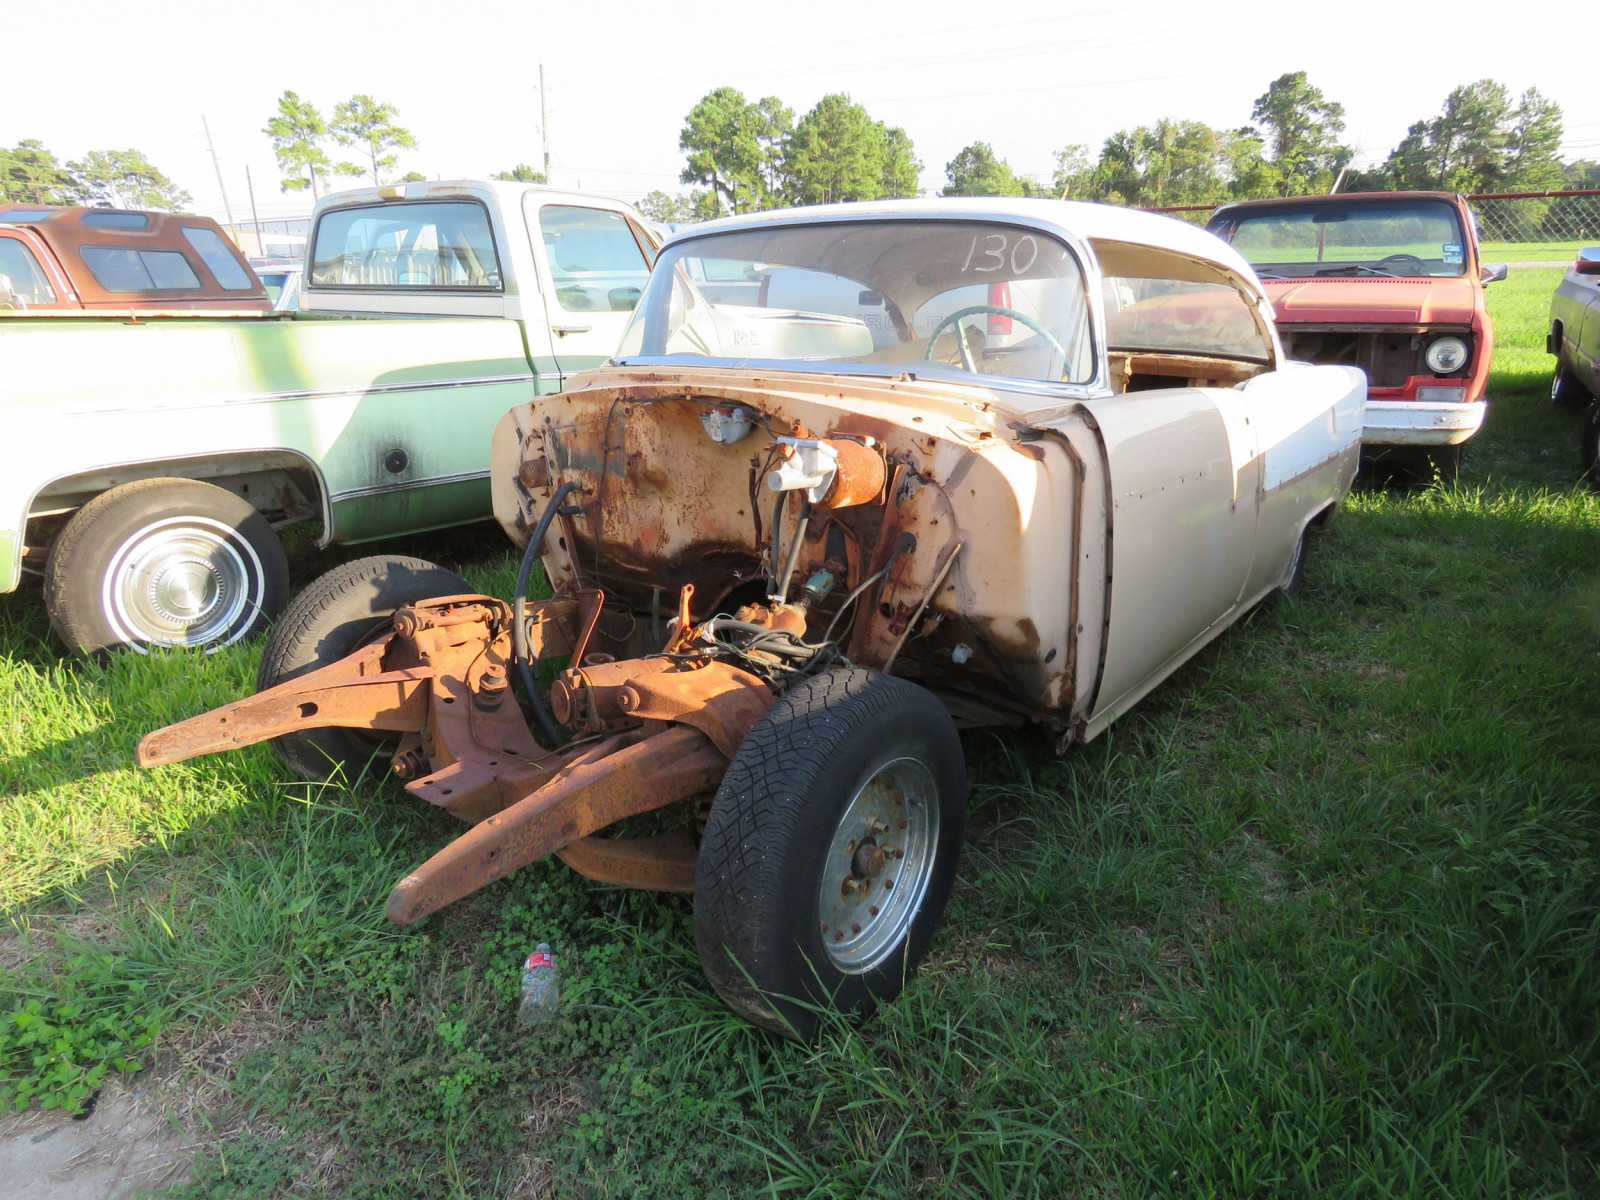 1955 Chevrolet for project - Image 1